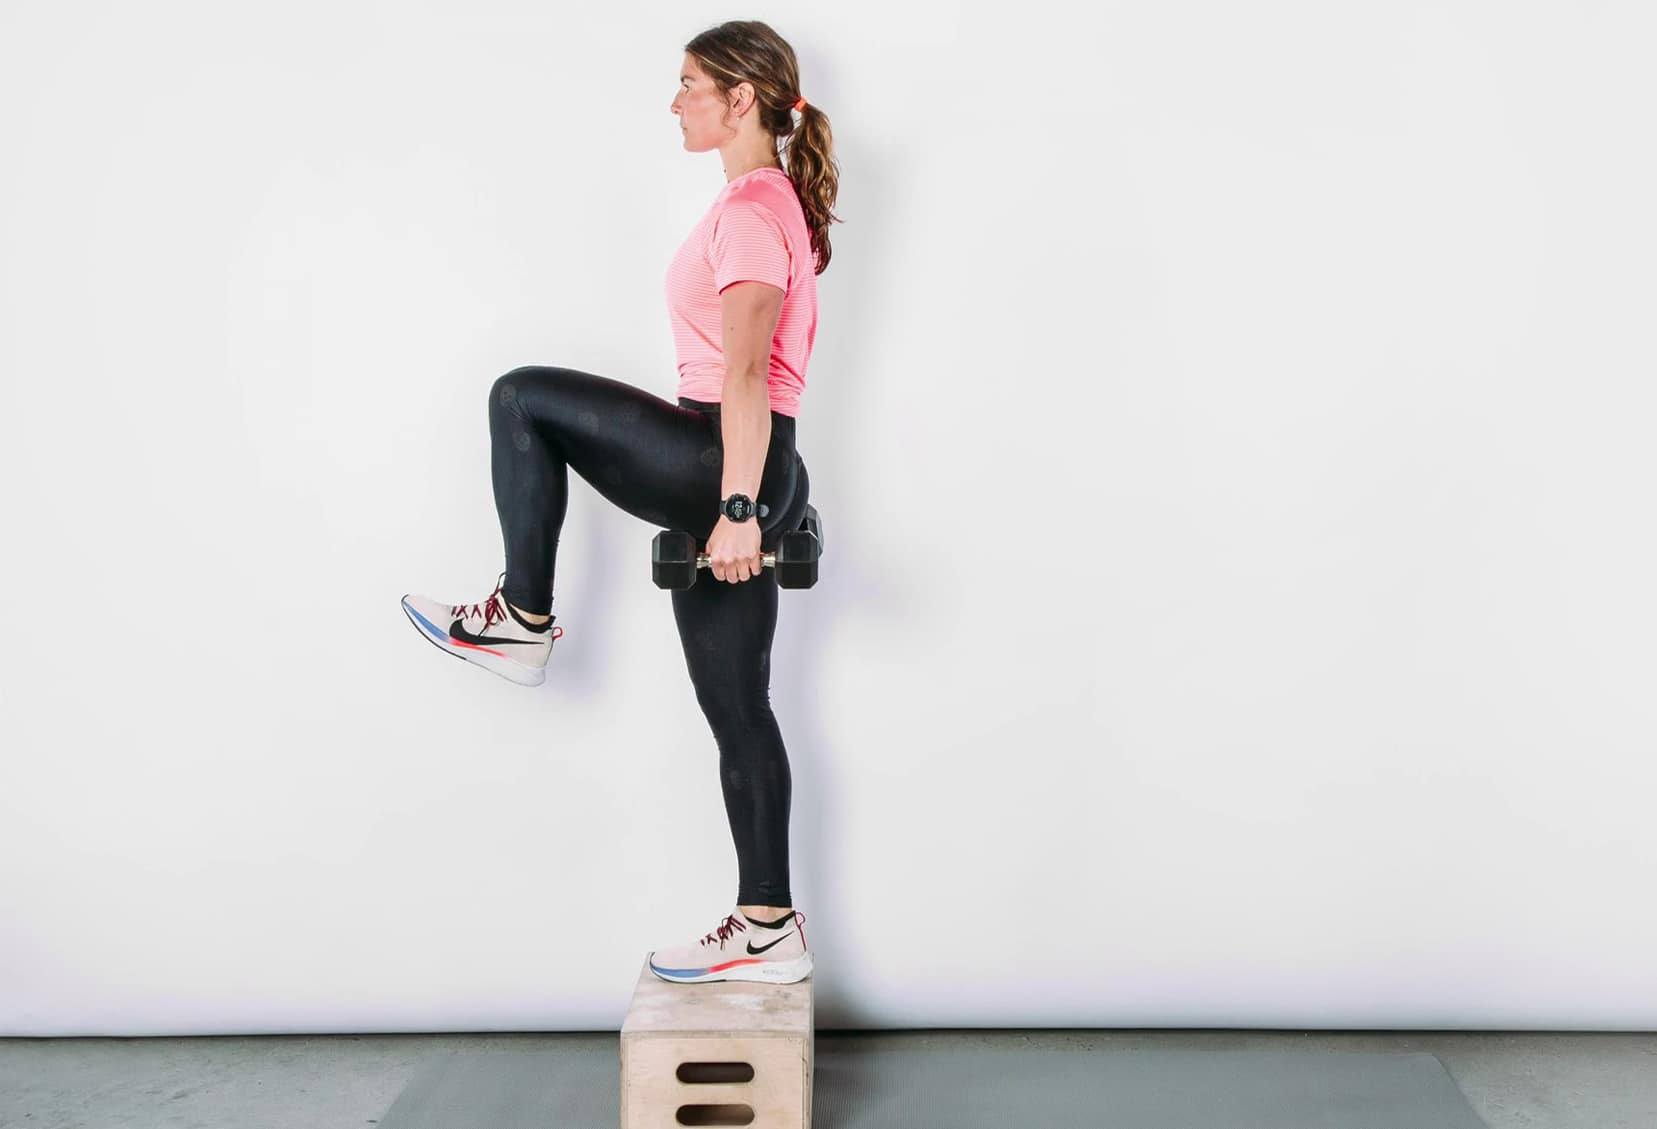 The 6-Move Dumbbell Workout To Get Faster